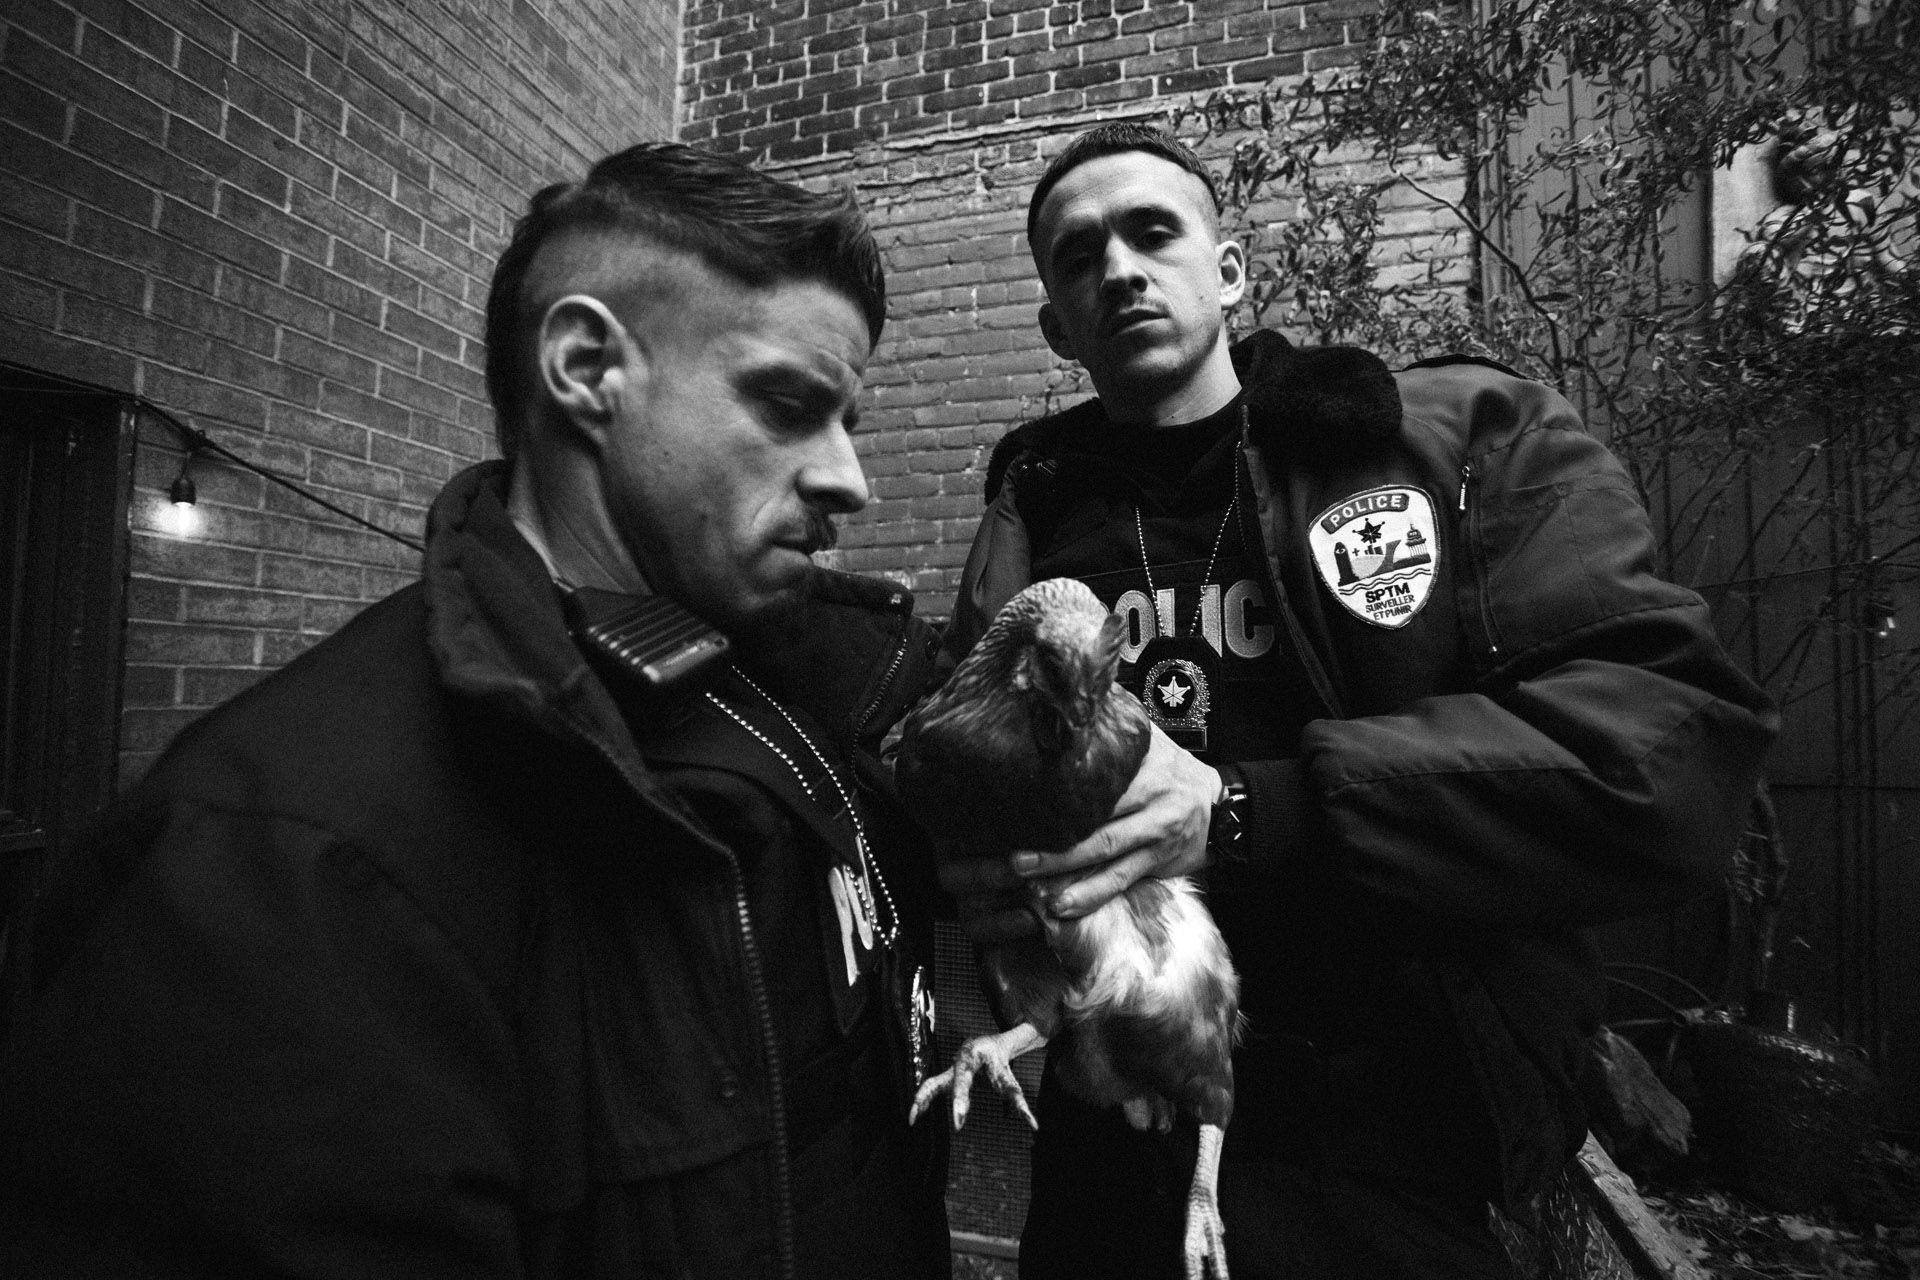 actors Hugolin Chevrette-Landesque and Emile Schneider dressed as cops holding a chicken trying to look badass in behind the scenes for TV series La Loi C'est La Loi filmed by Les Gamins for TV5 Unis